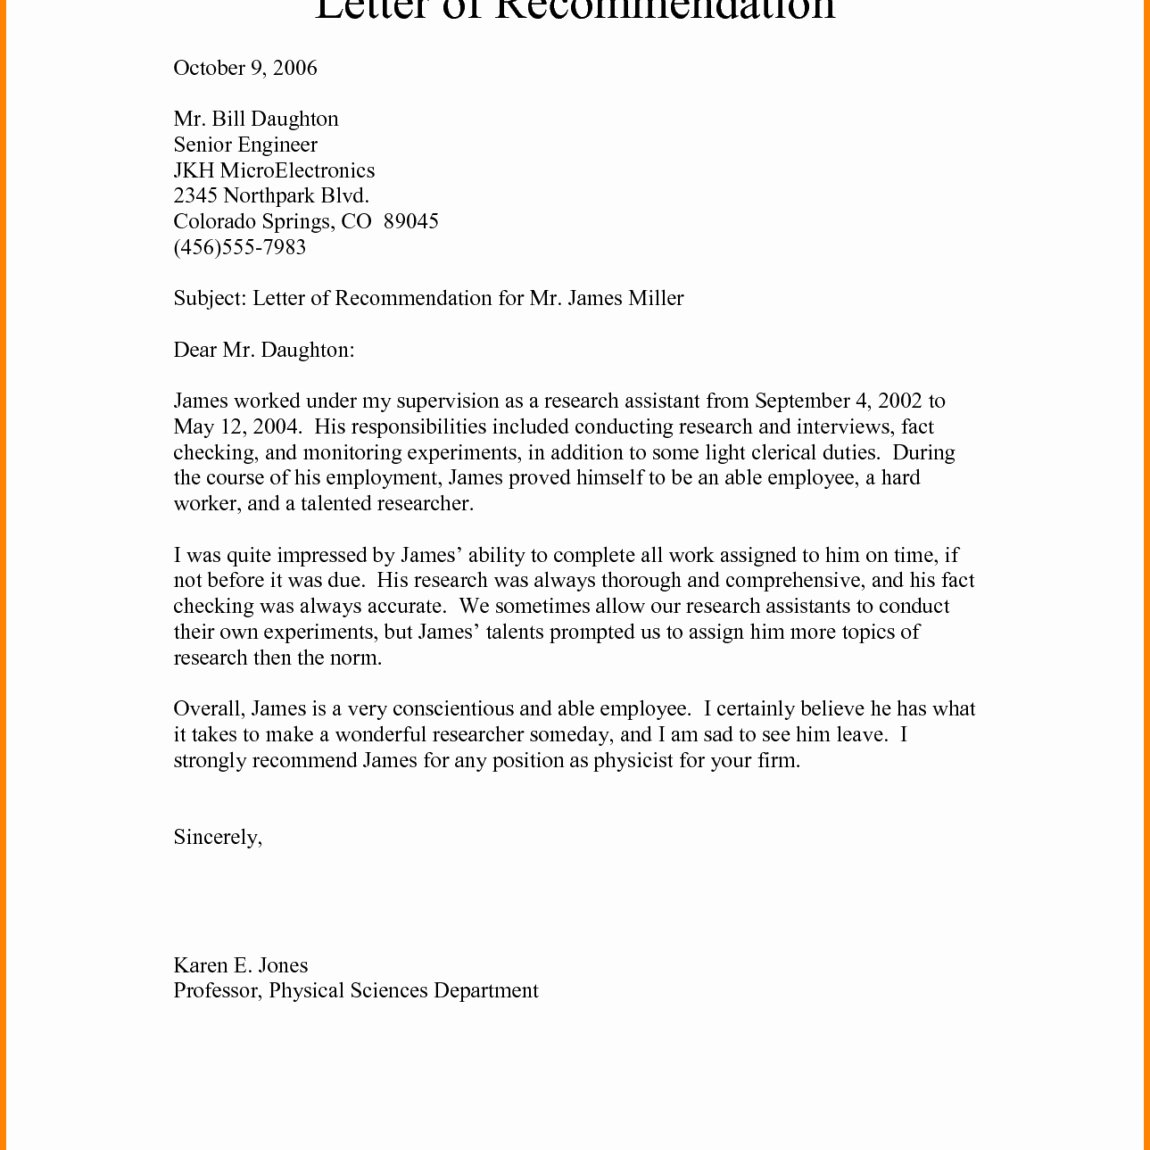 General Recommendation Letter for Employee Fresh General Re Mendation Letter for Employee